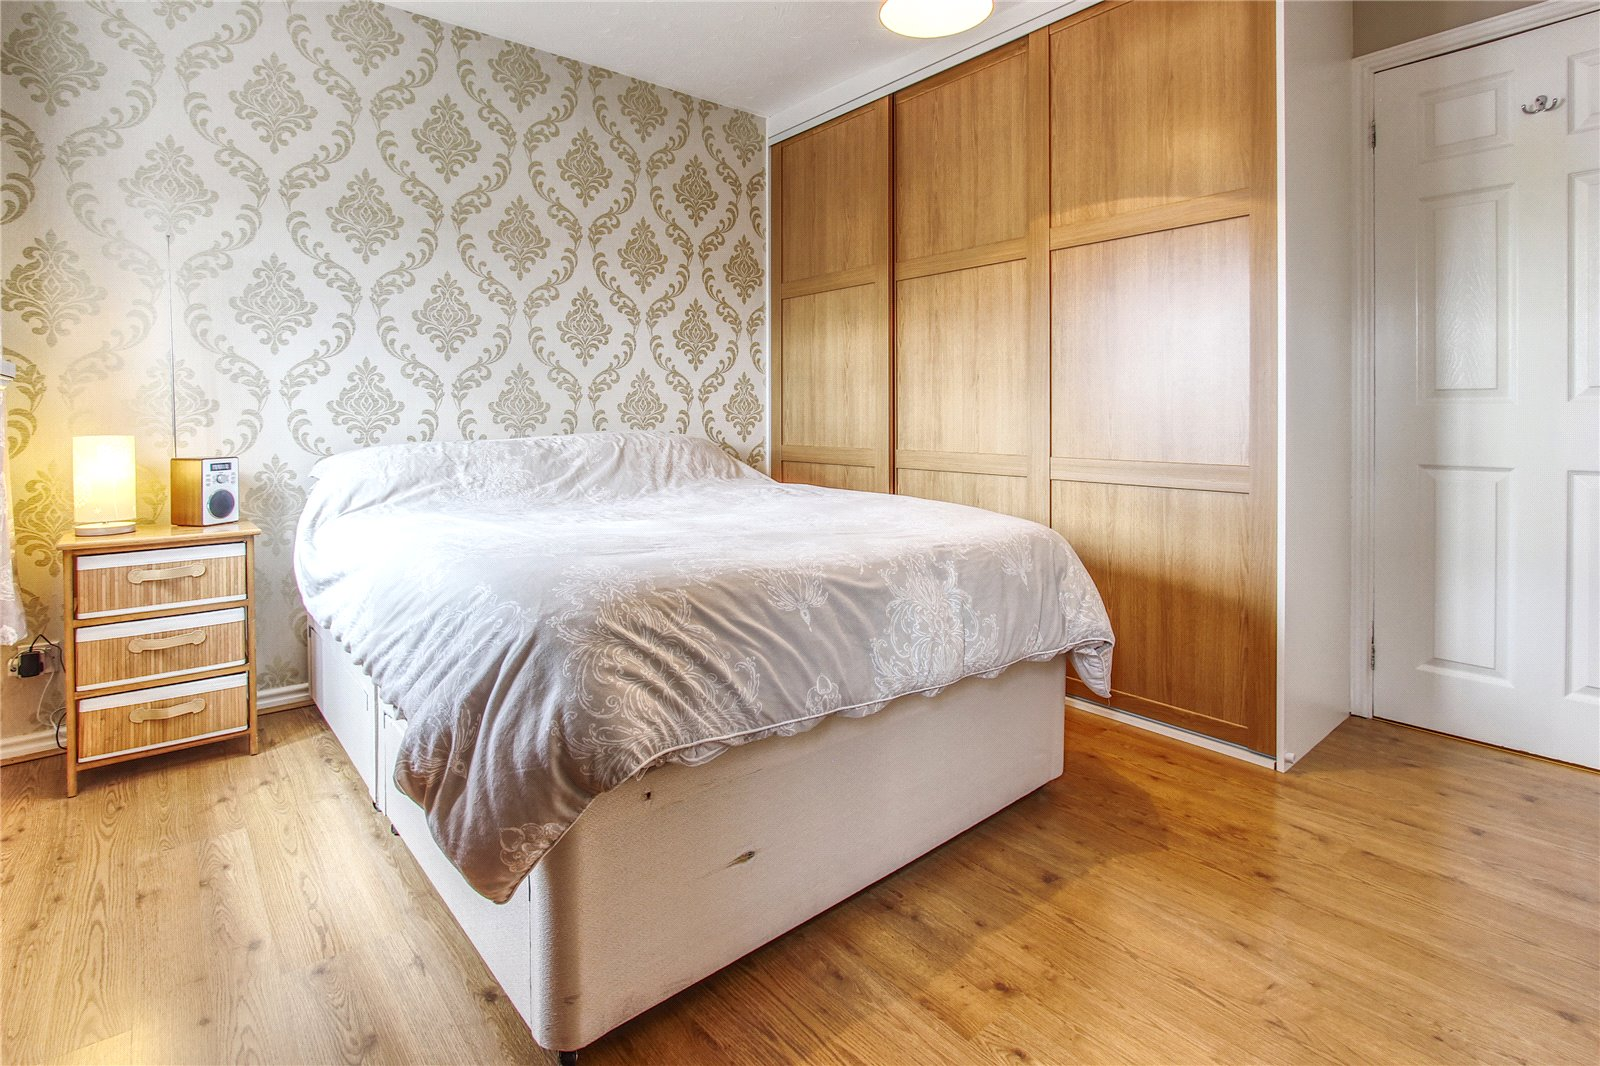 2 bed house for sale in Ashbourne Close, Eston  - Property Image 10